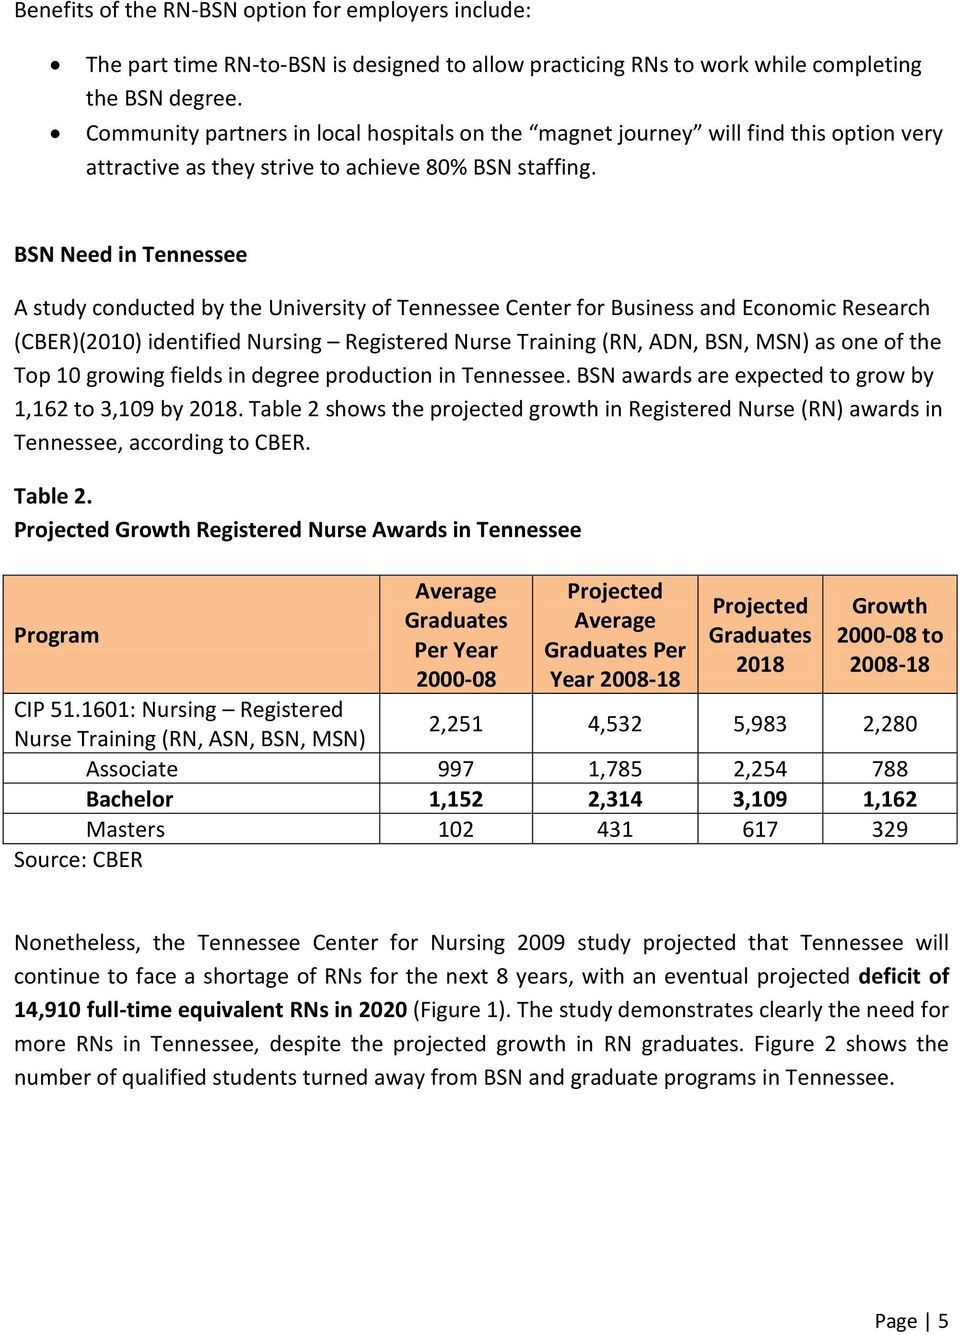 BSN Need in Tennessee A study conducted by the University of Tennessee Center for Business and Economic Research (CBER)(2010) identified Nursing Registered Nurse Training (RN, ADN, BSN, MSN) as one